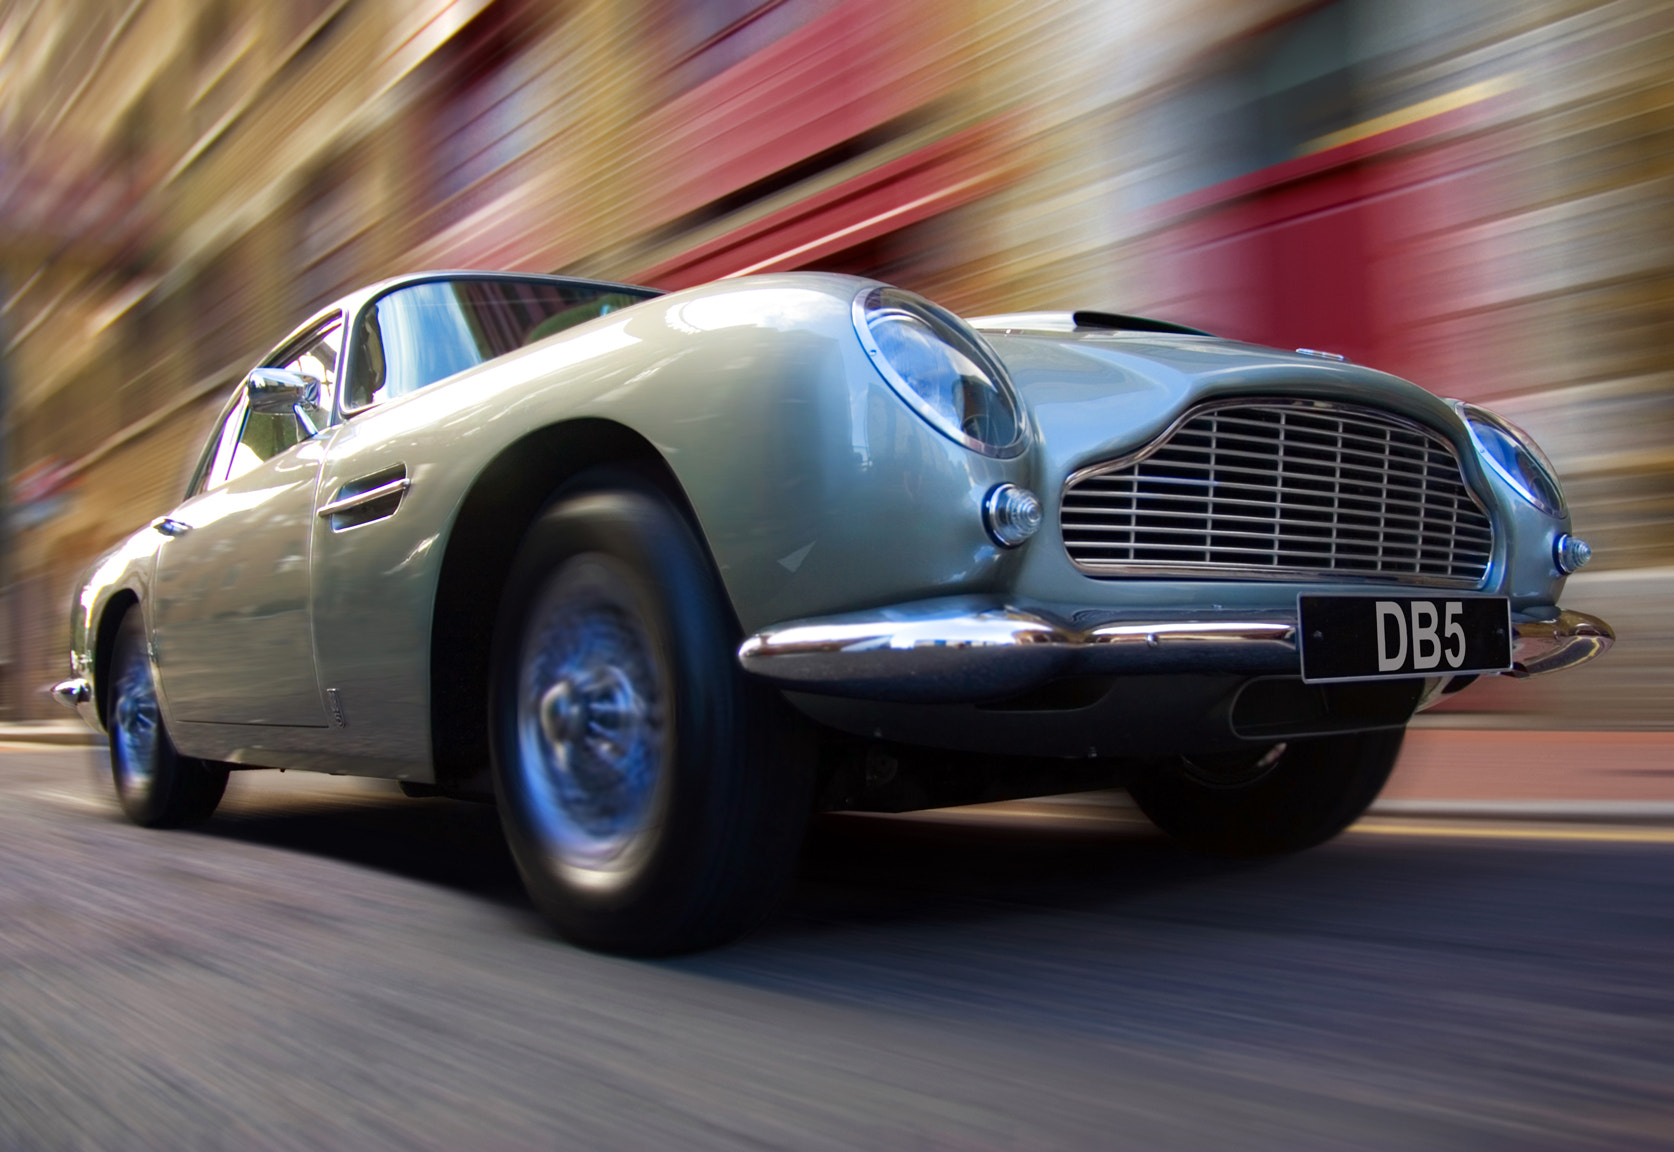 Photograph Aston Martin DB5 by Justin Sneddon on 500px